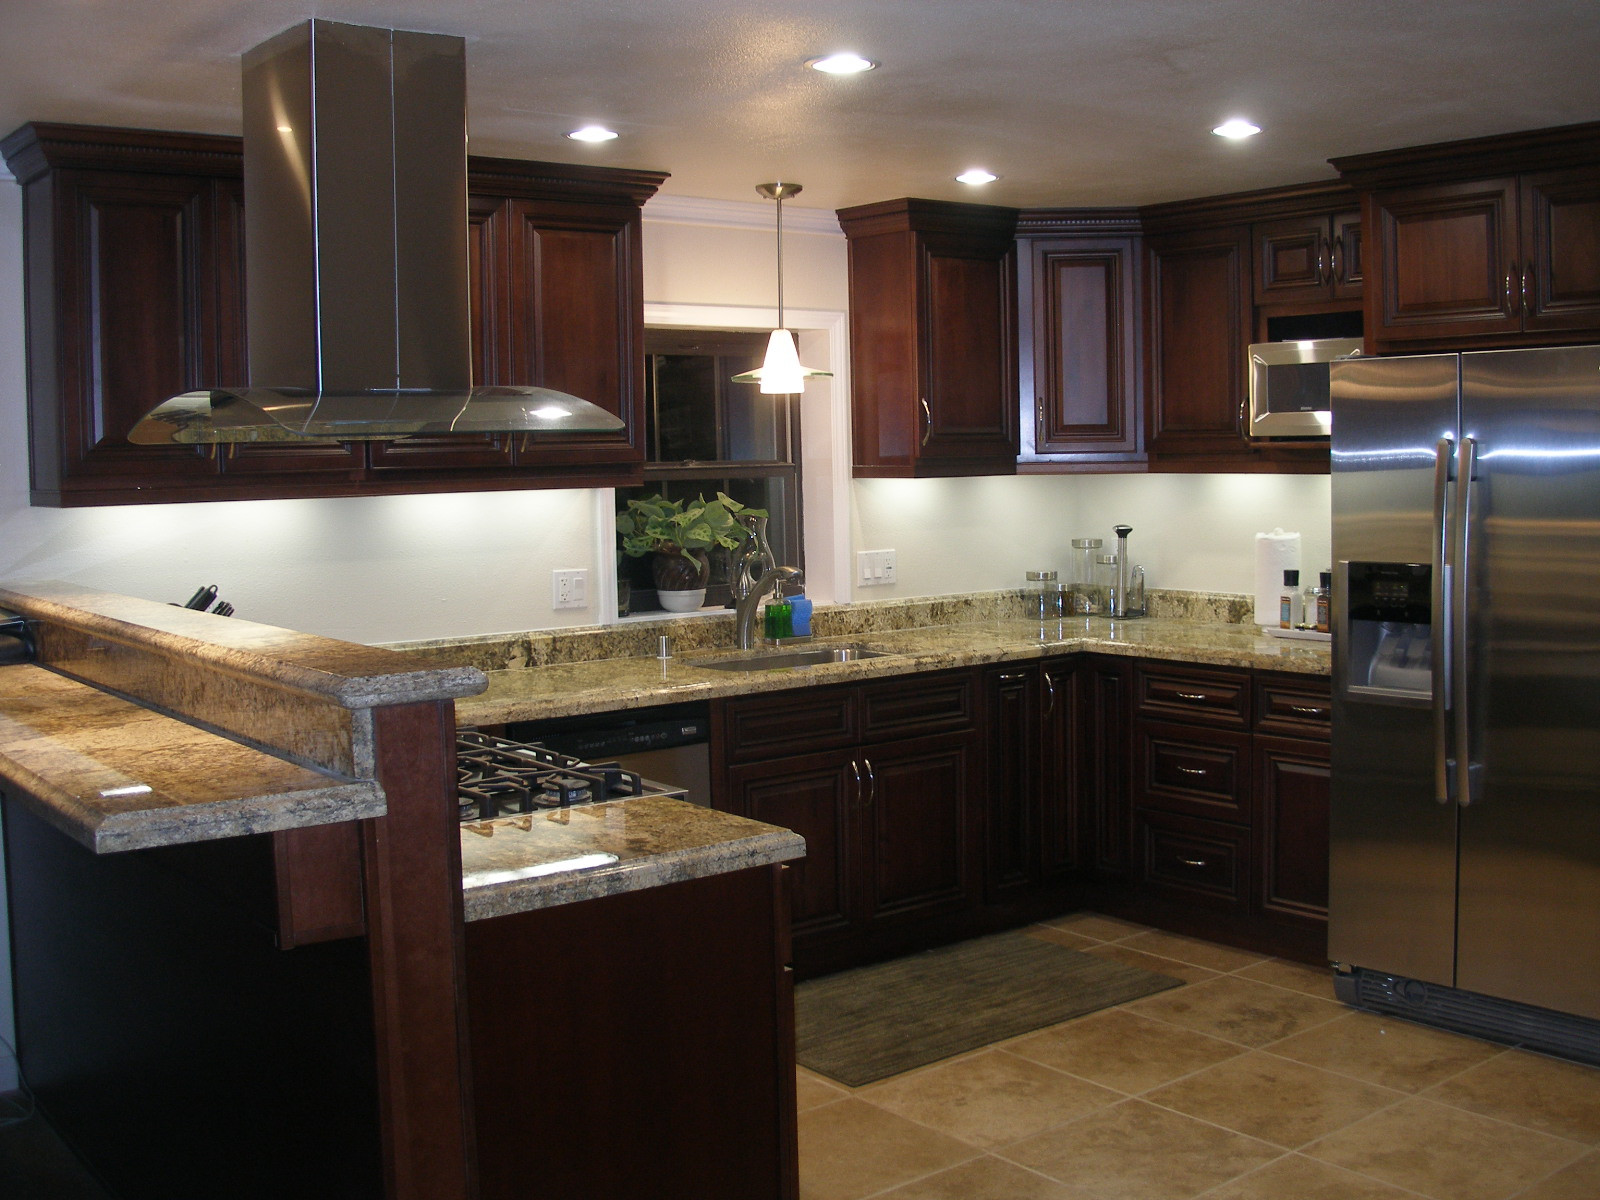 wonderful How To Remodel Kitchen #2: CALL FOR YOUR FREE KITCHEN REMODEL ESTIMATE TODAY! (800) 213-5288 or (925) 718-1054